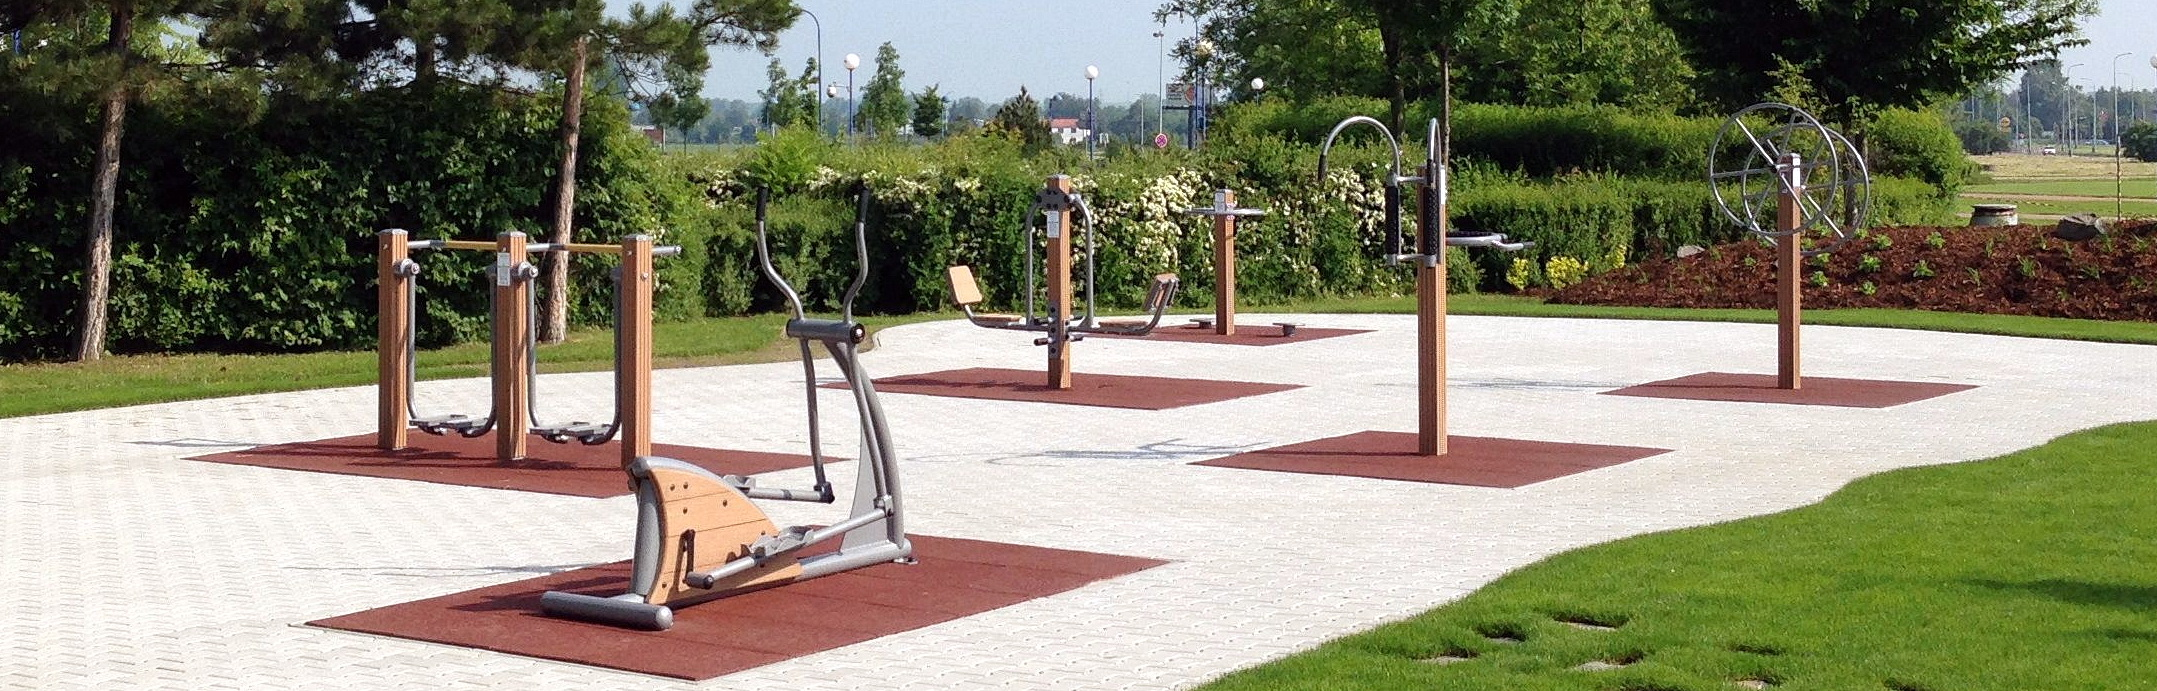 Outdoor Fitness Equipment made Stainles Steel